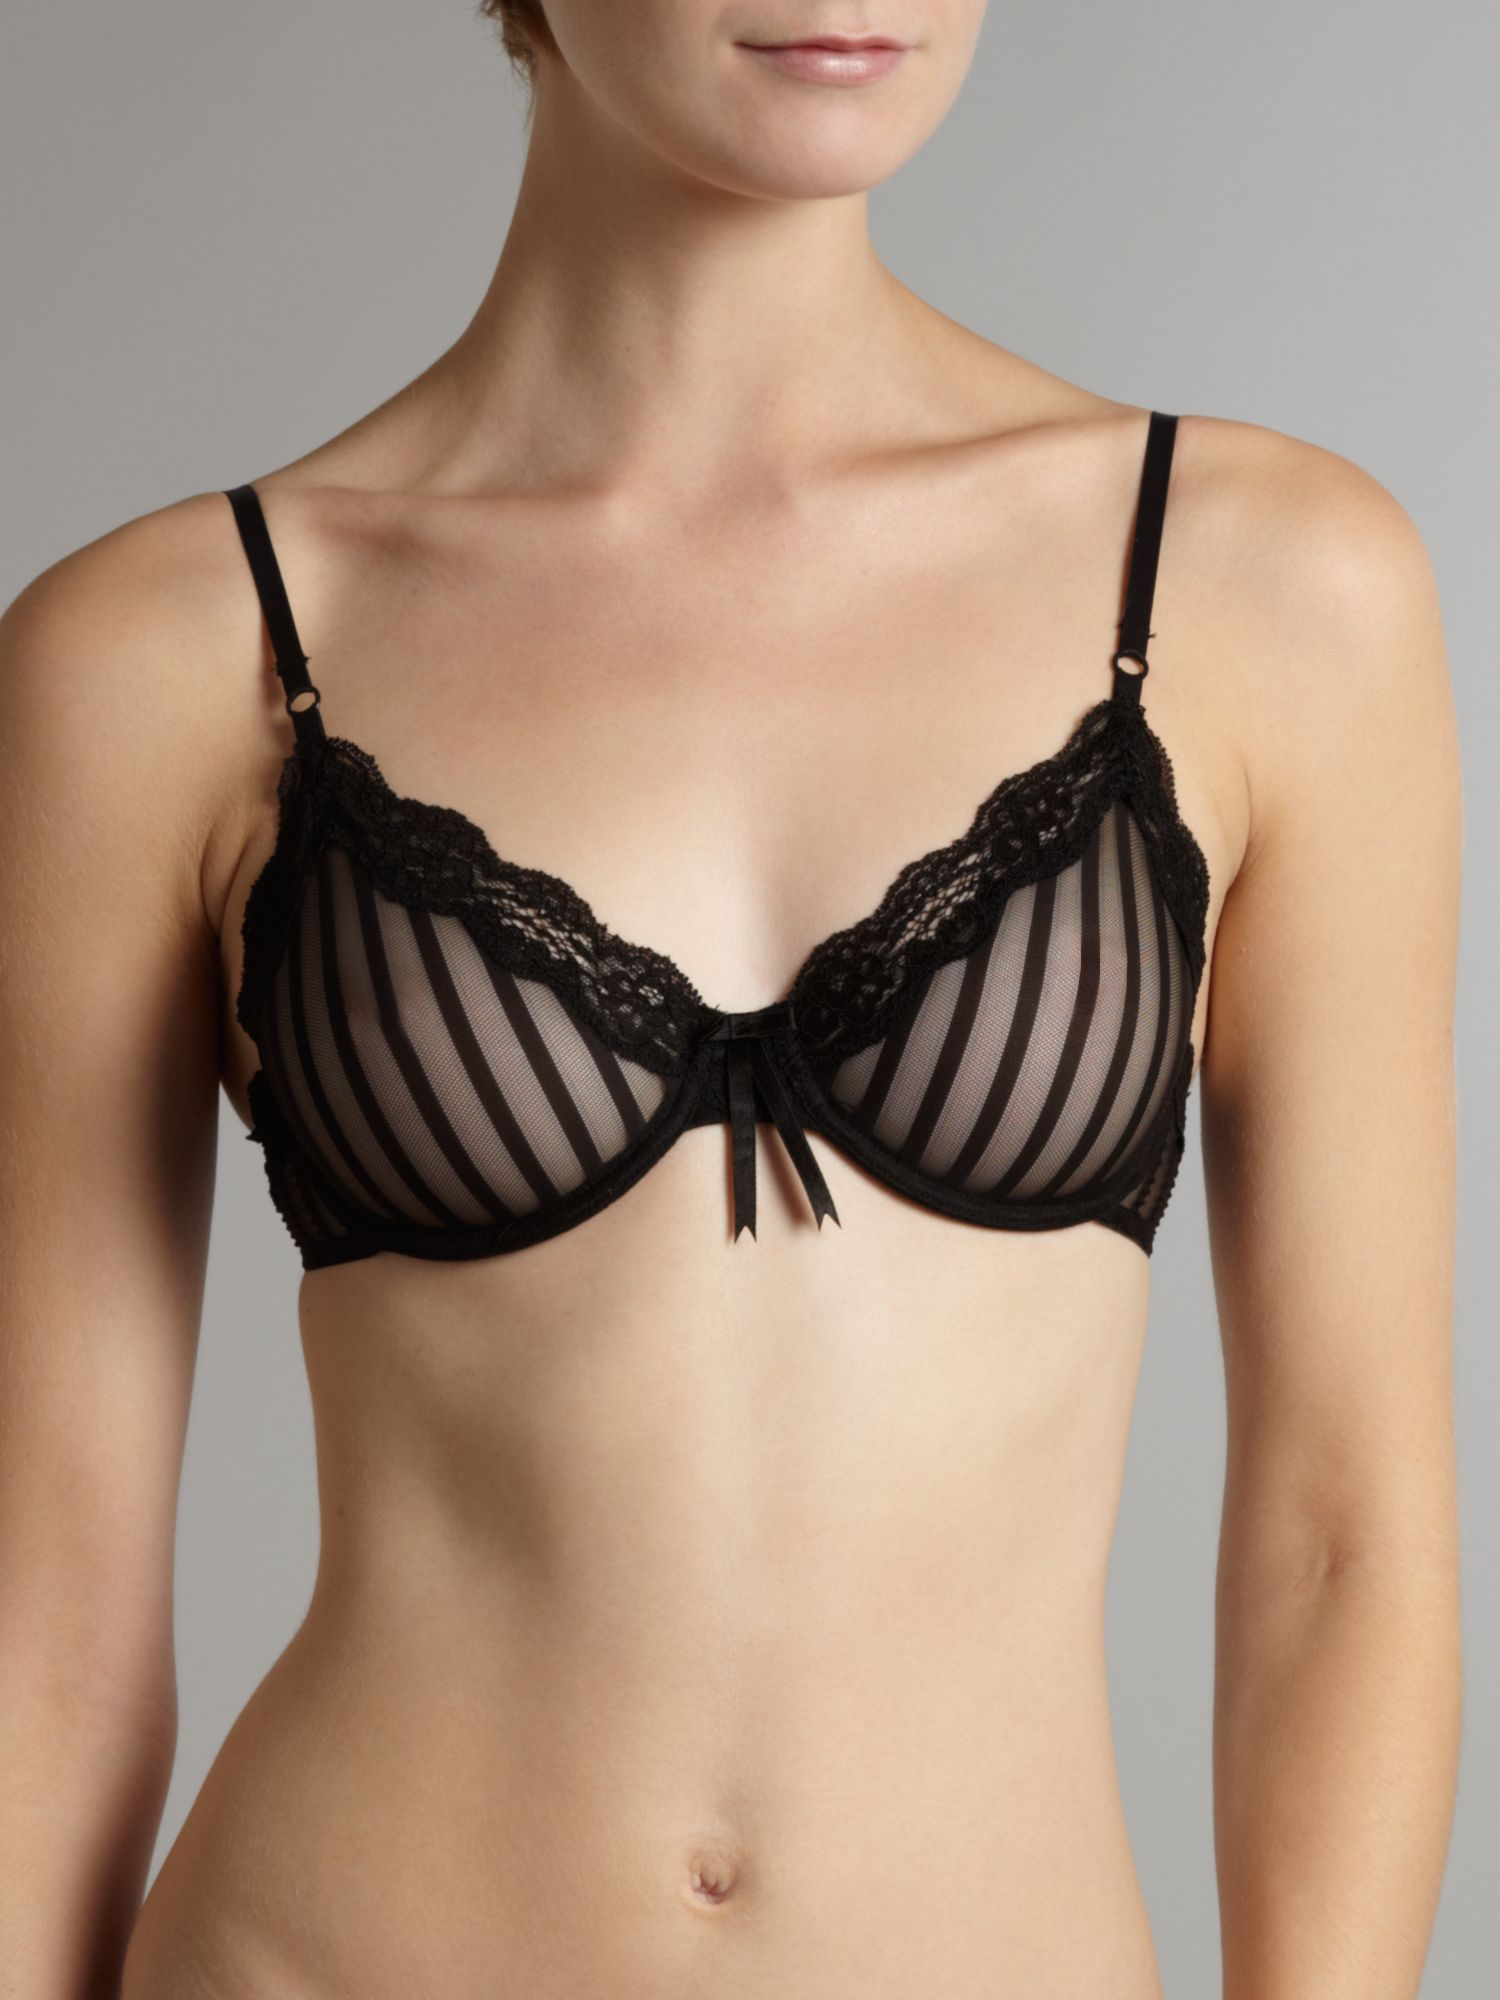 Sheer Ribbons black underwired bra